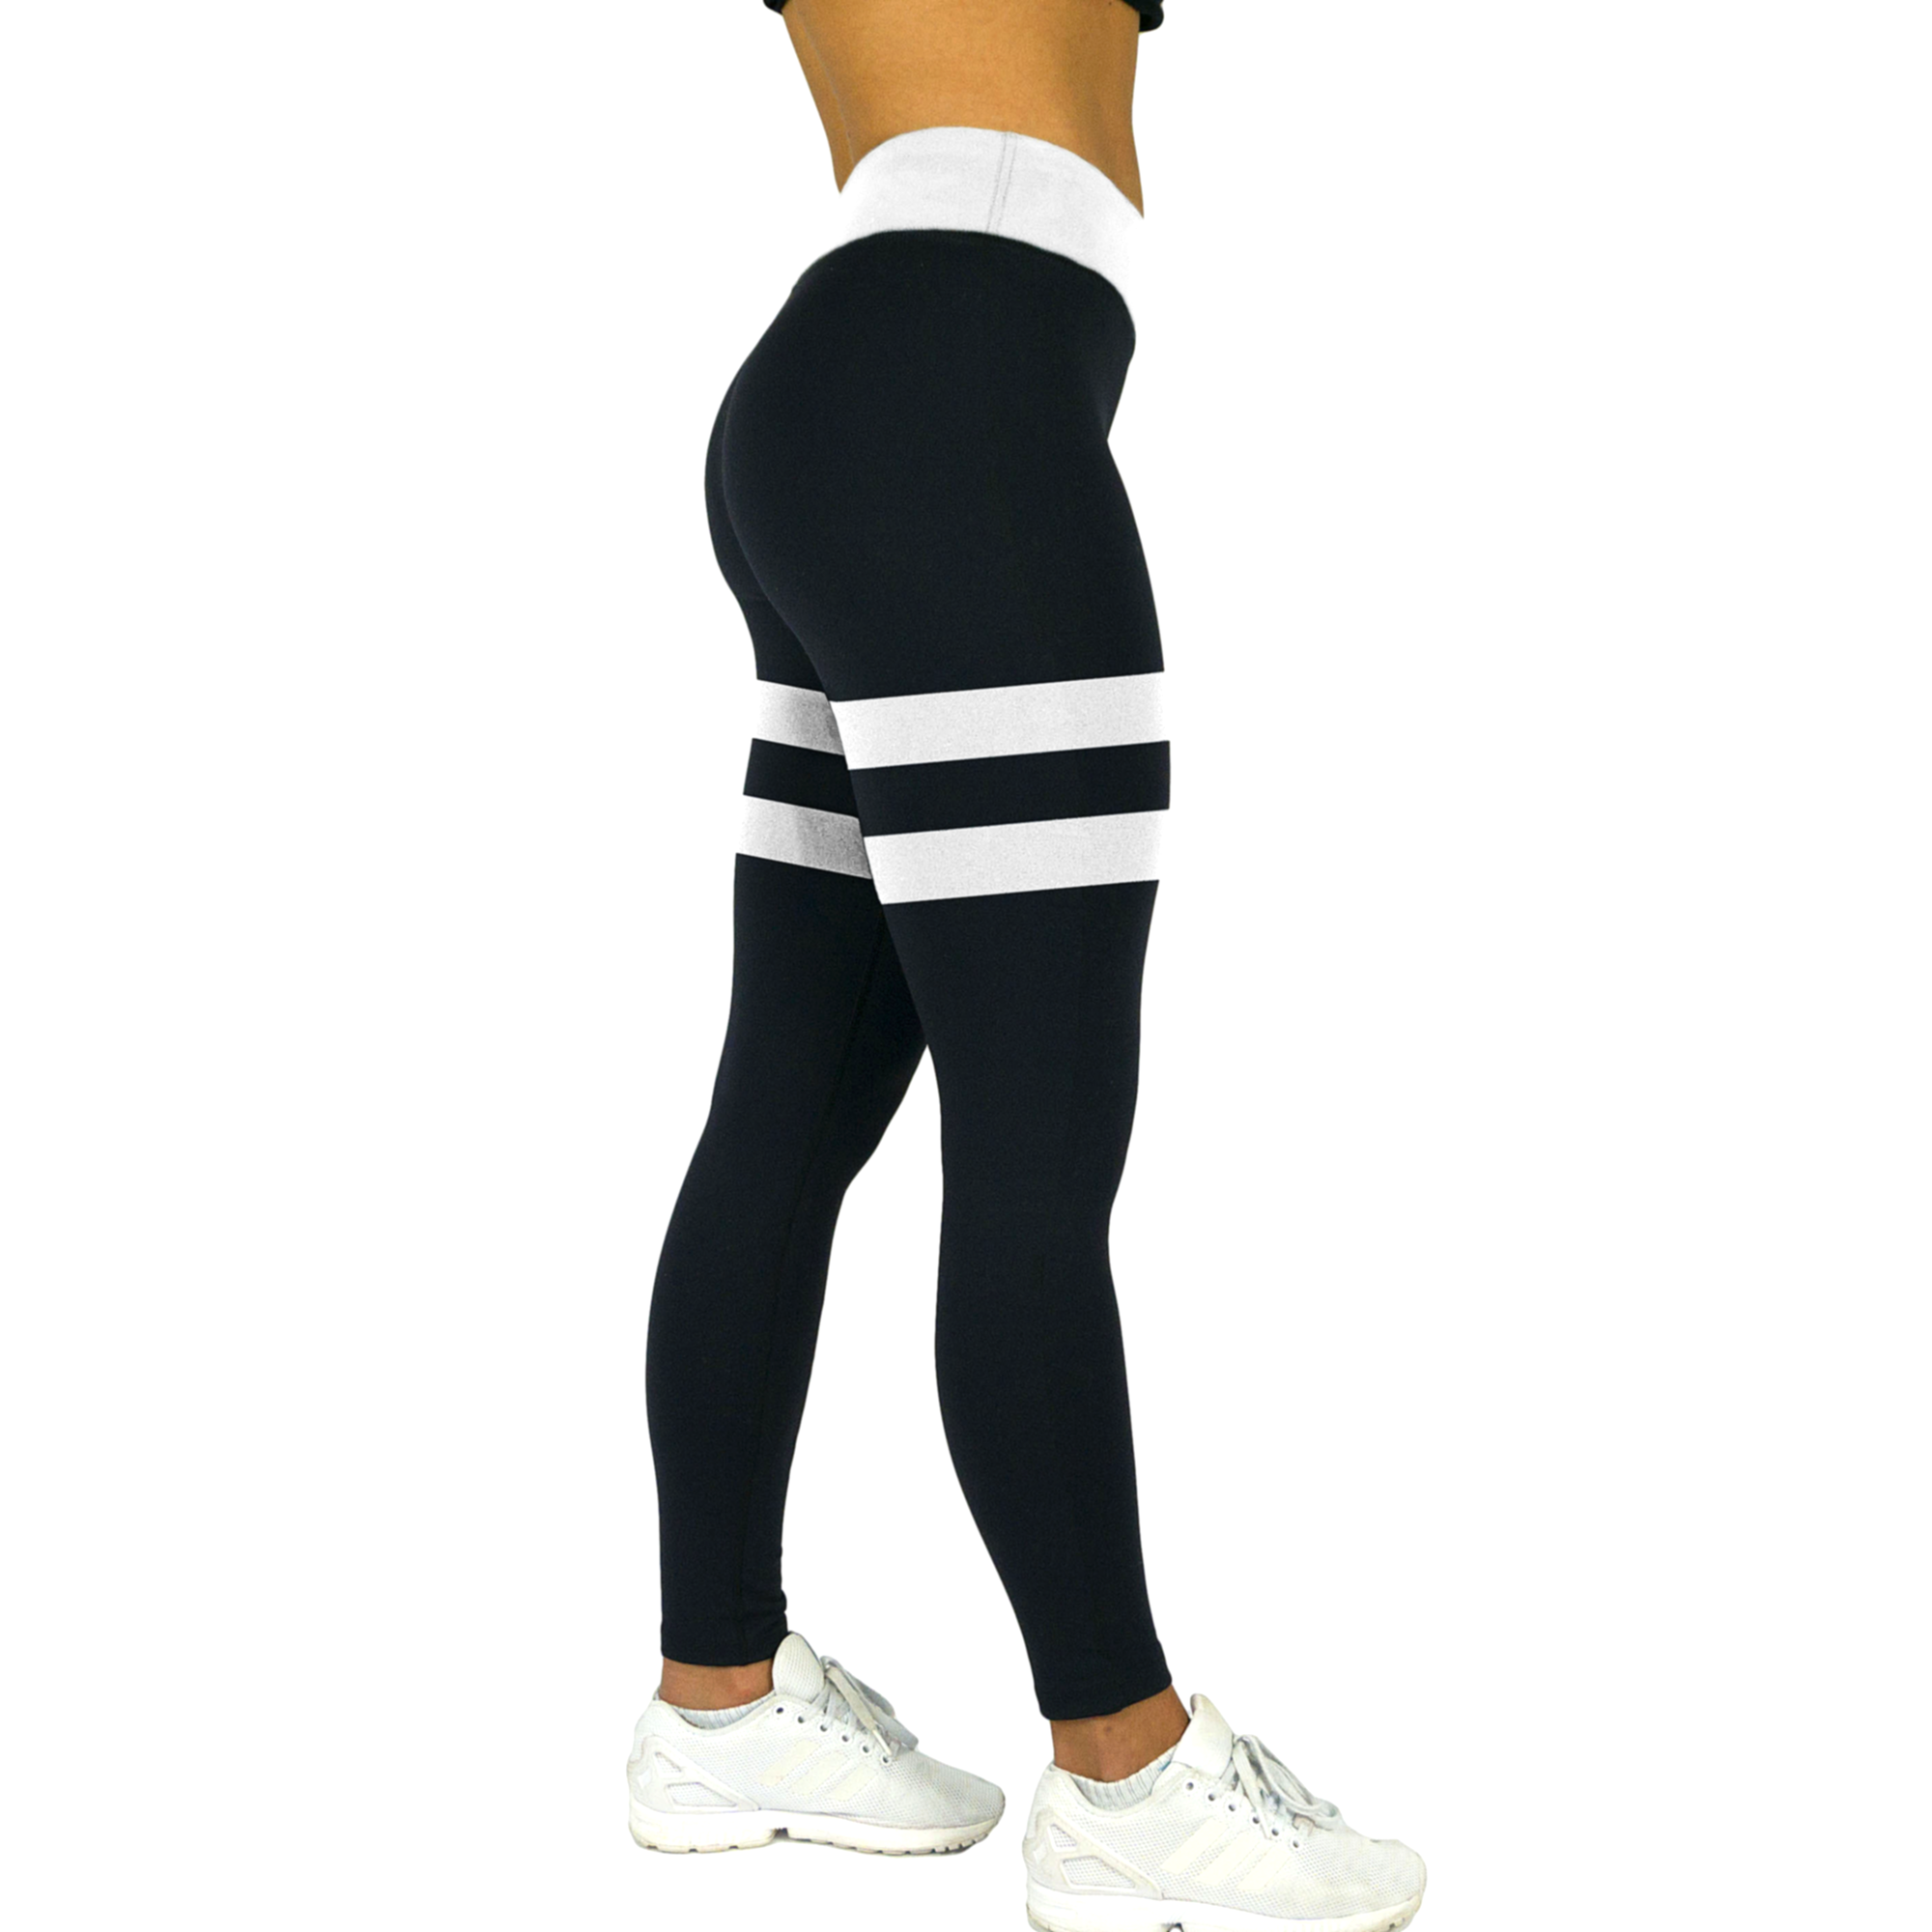 a08fe34fde094f Black and White Striped Thigh High-Waist Yoga Leggings. Fitness is a way of  life. #fitnessgirls #gymlife